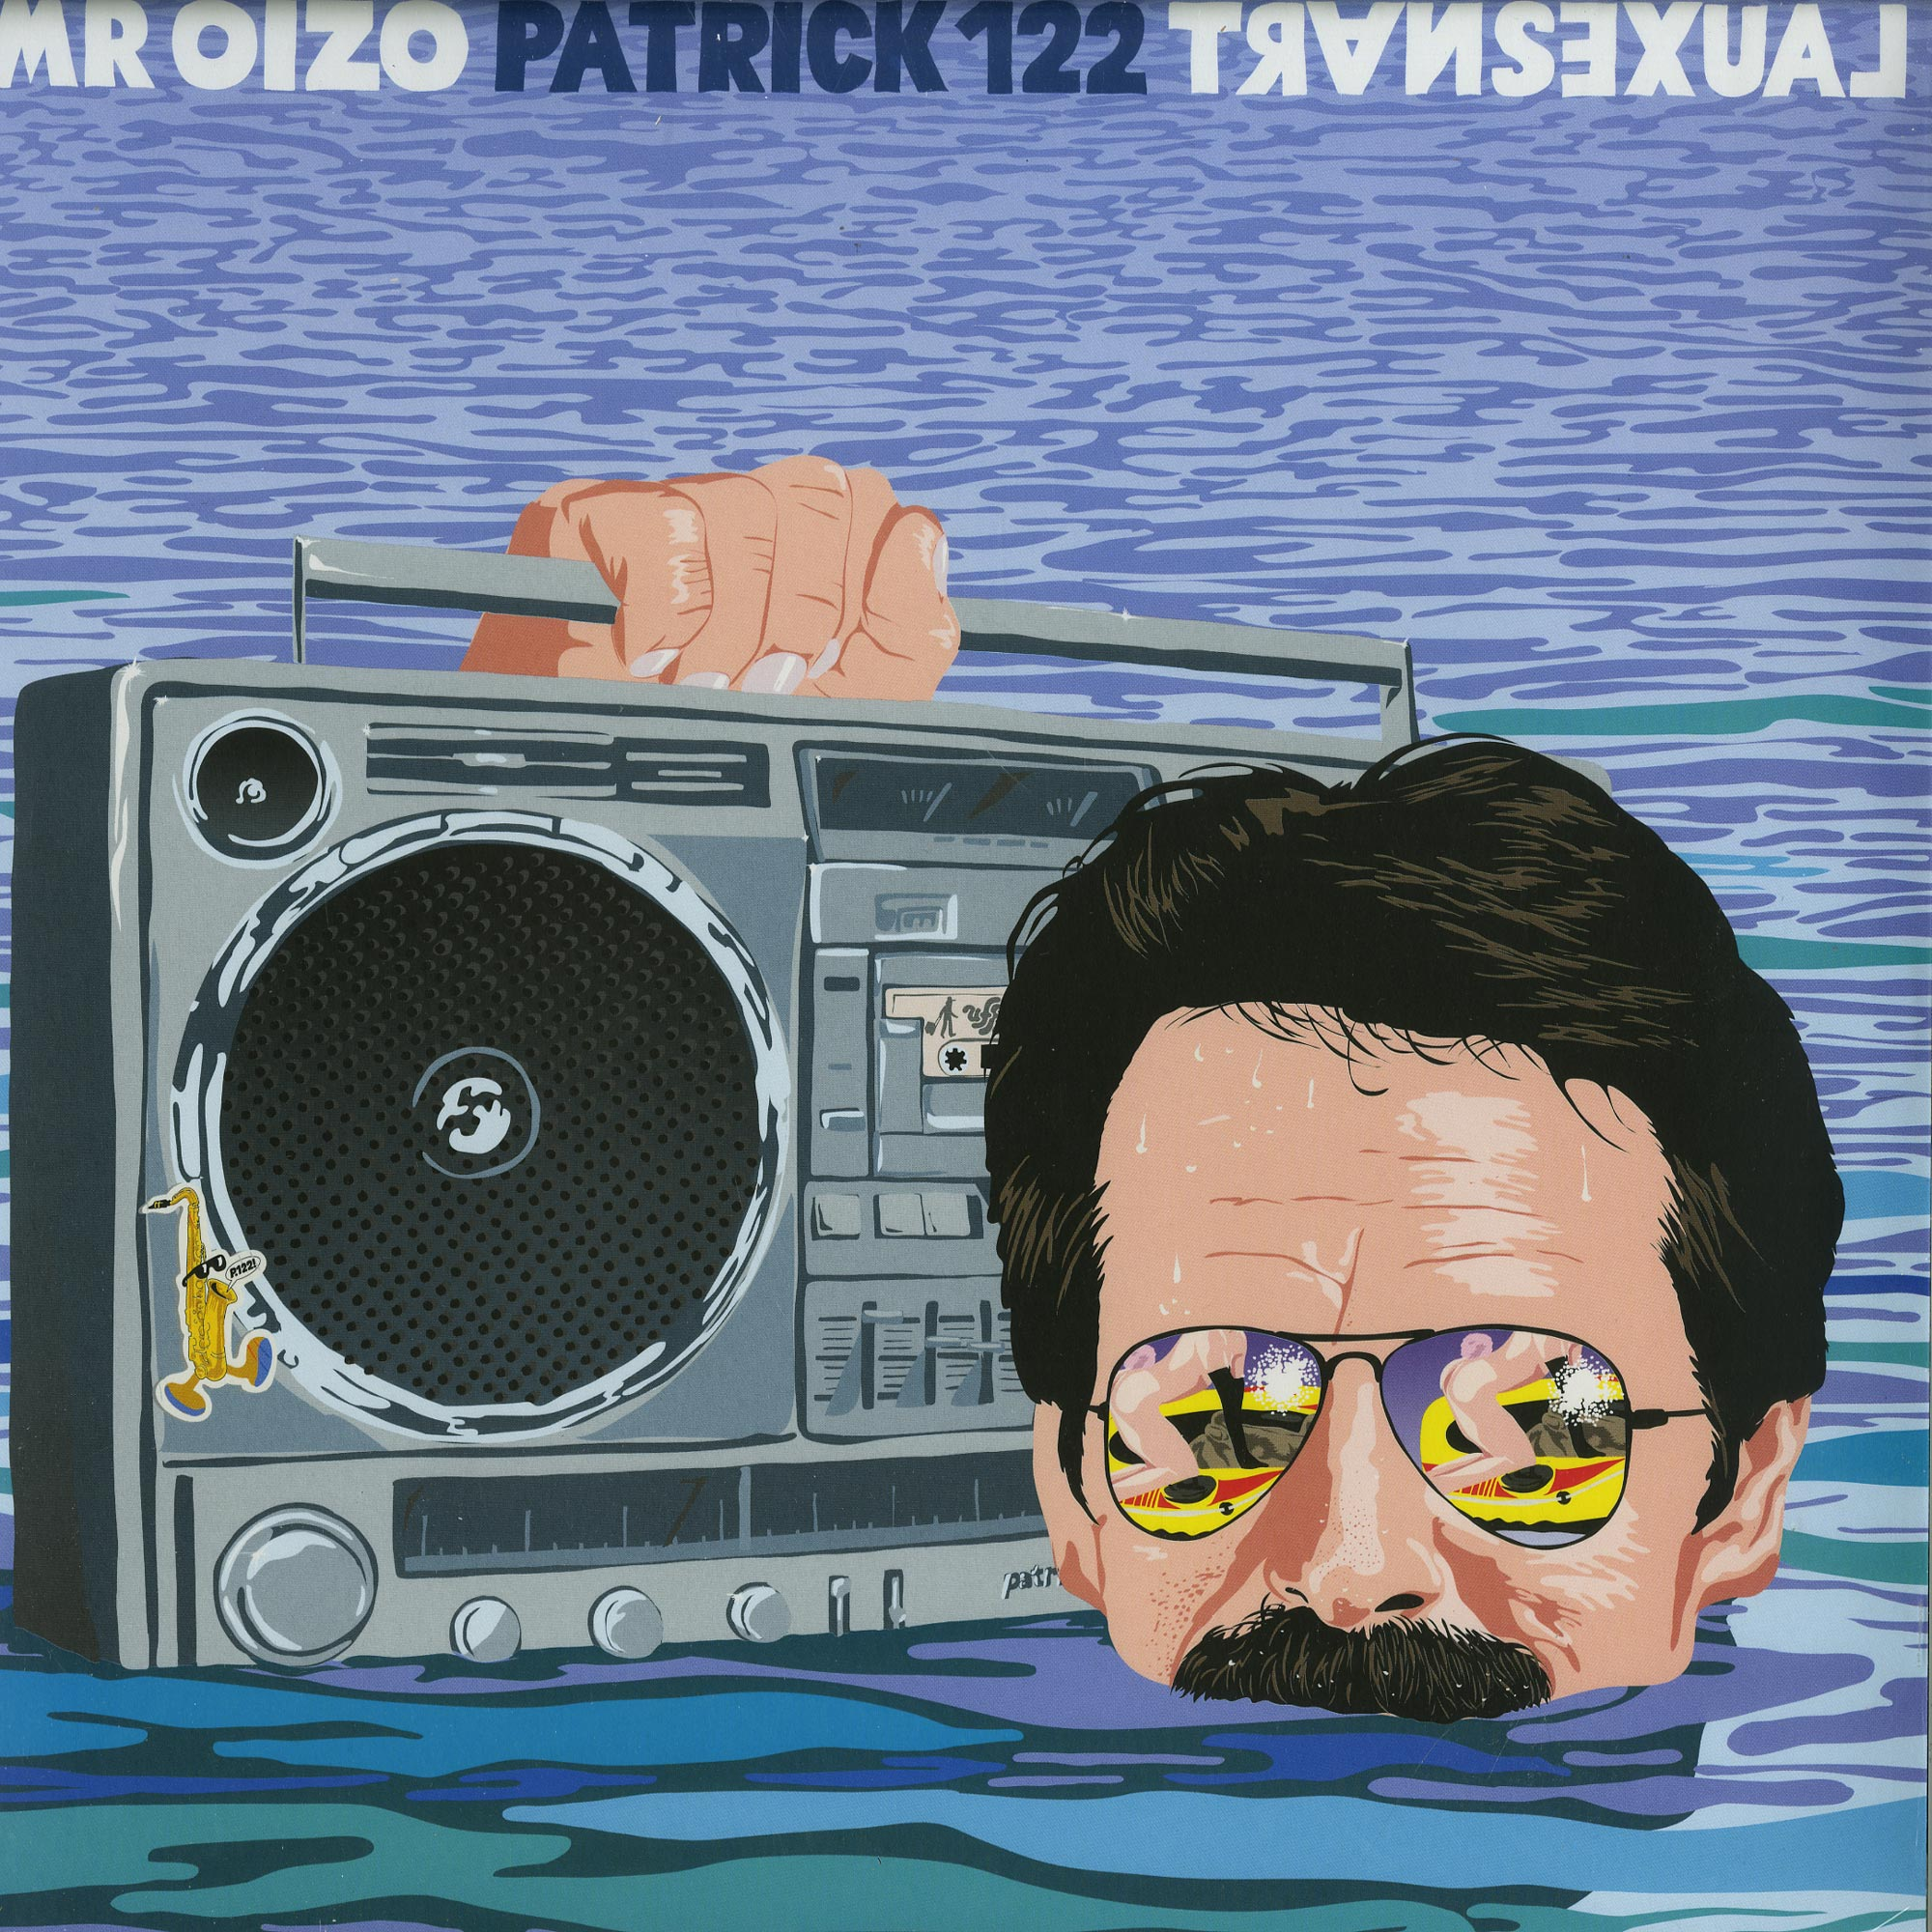 Mr. Oizo - TRANSEXUAL